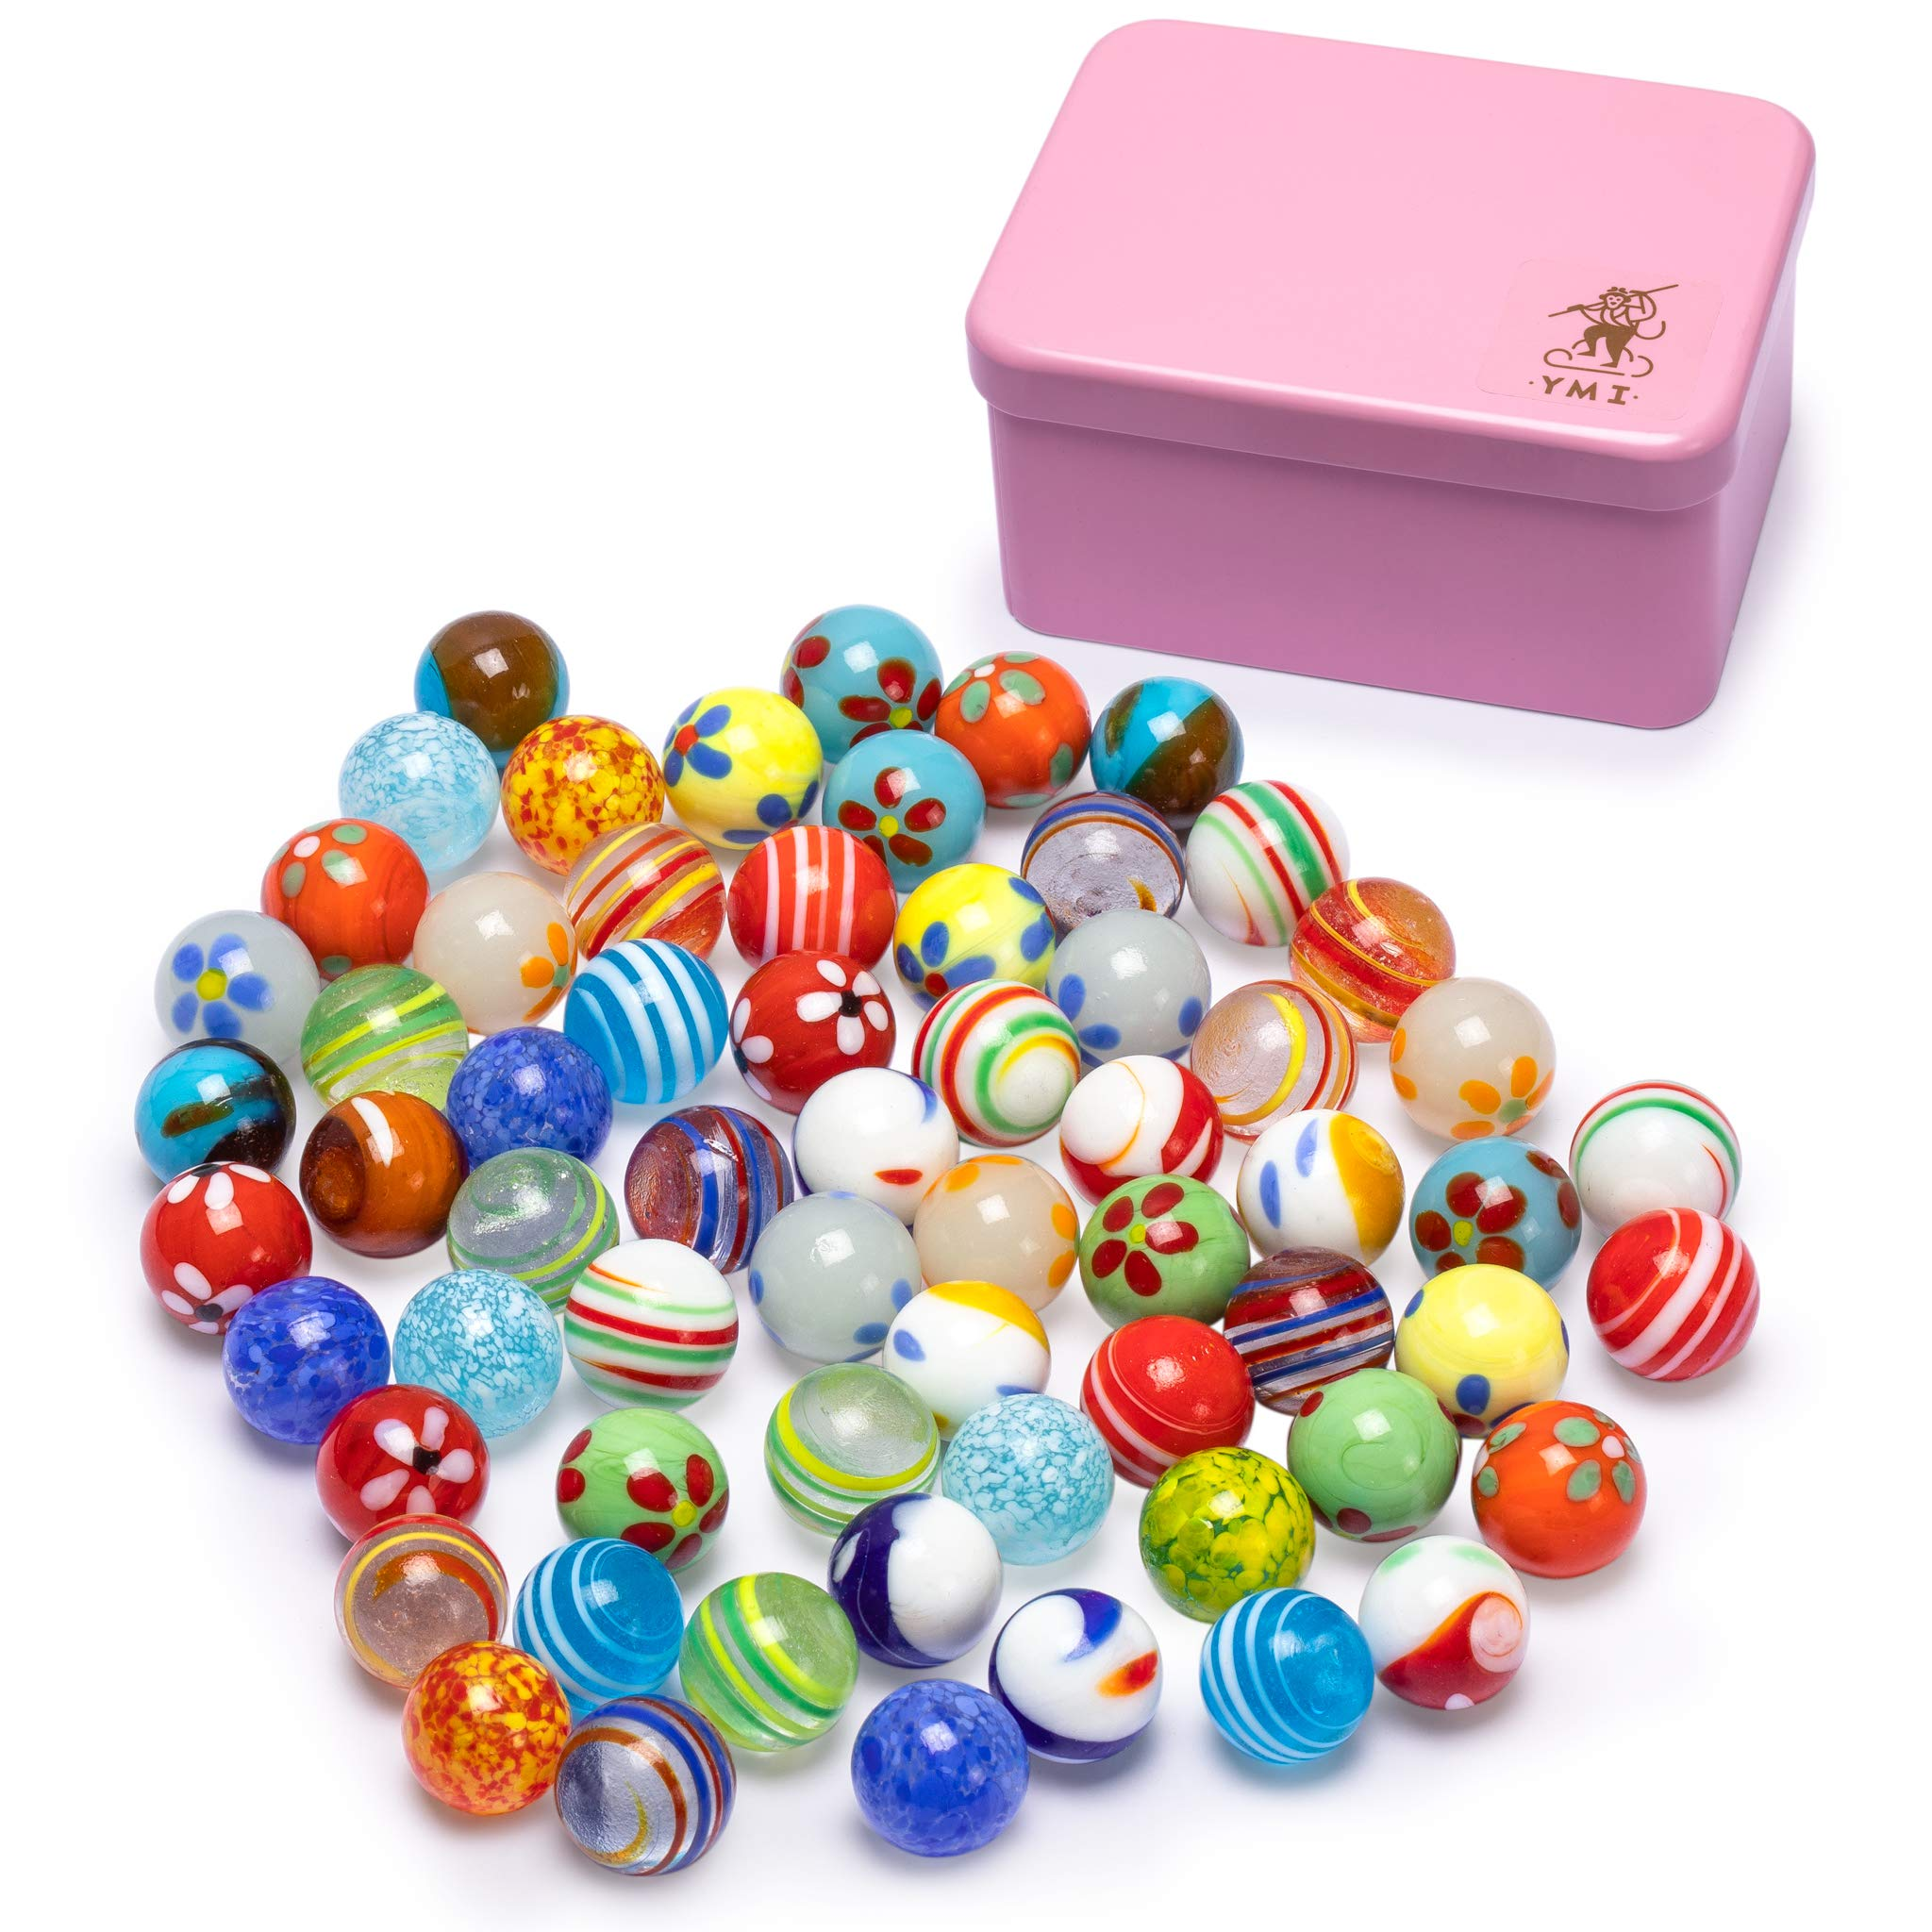 Yellow Mountain Imports Collector's Series Assorted Marbles Set in Tin Box, Galactic by Yellow Mountain Imports